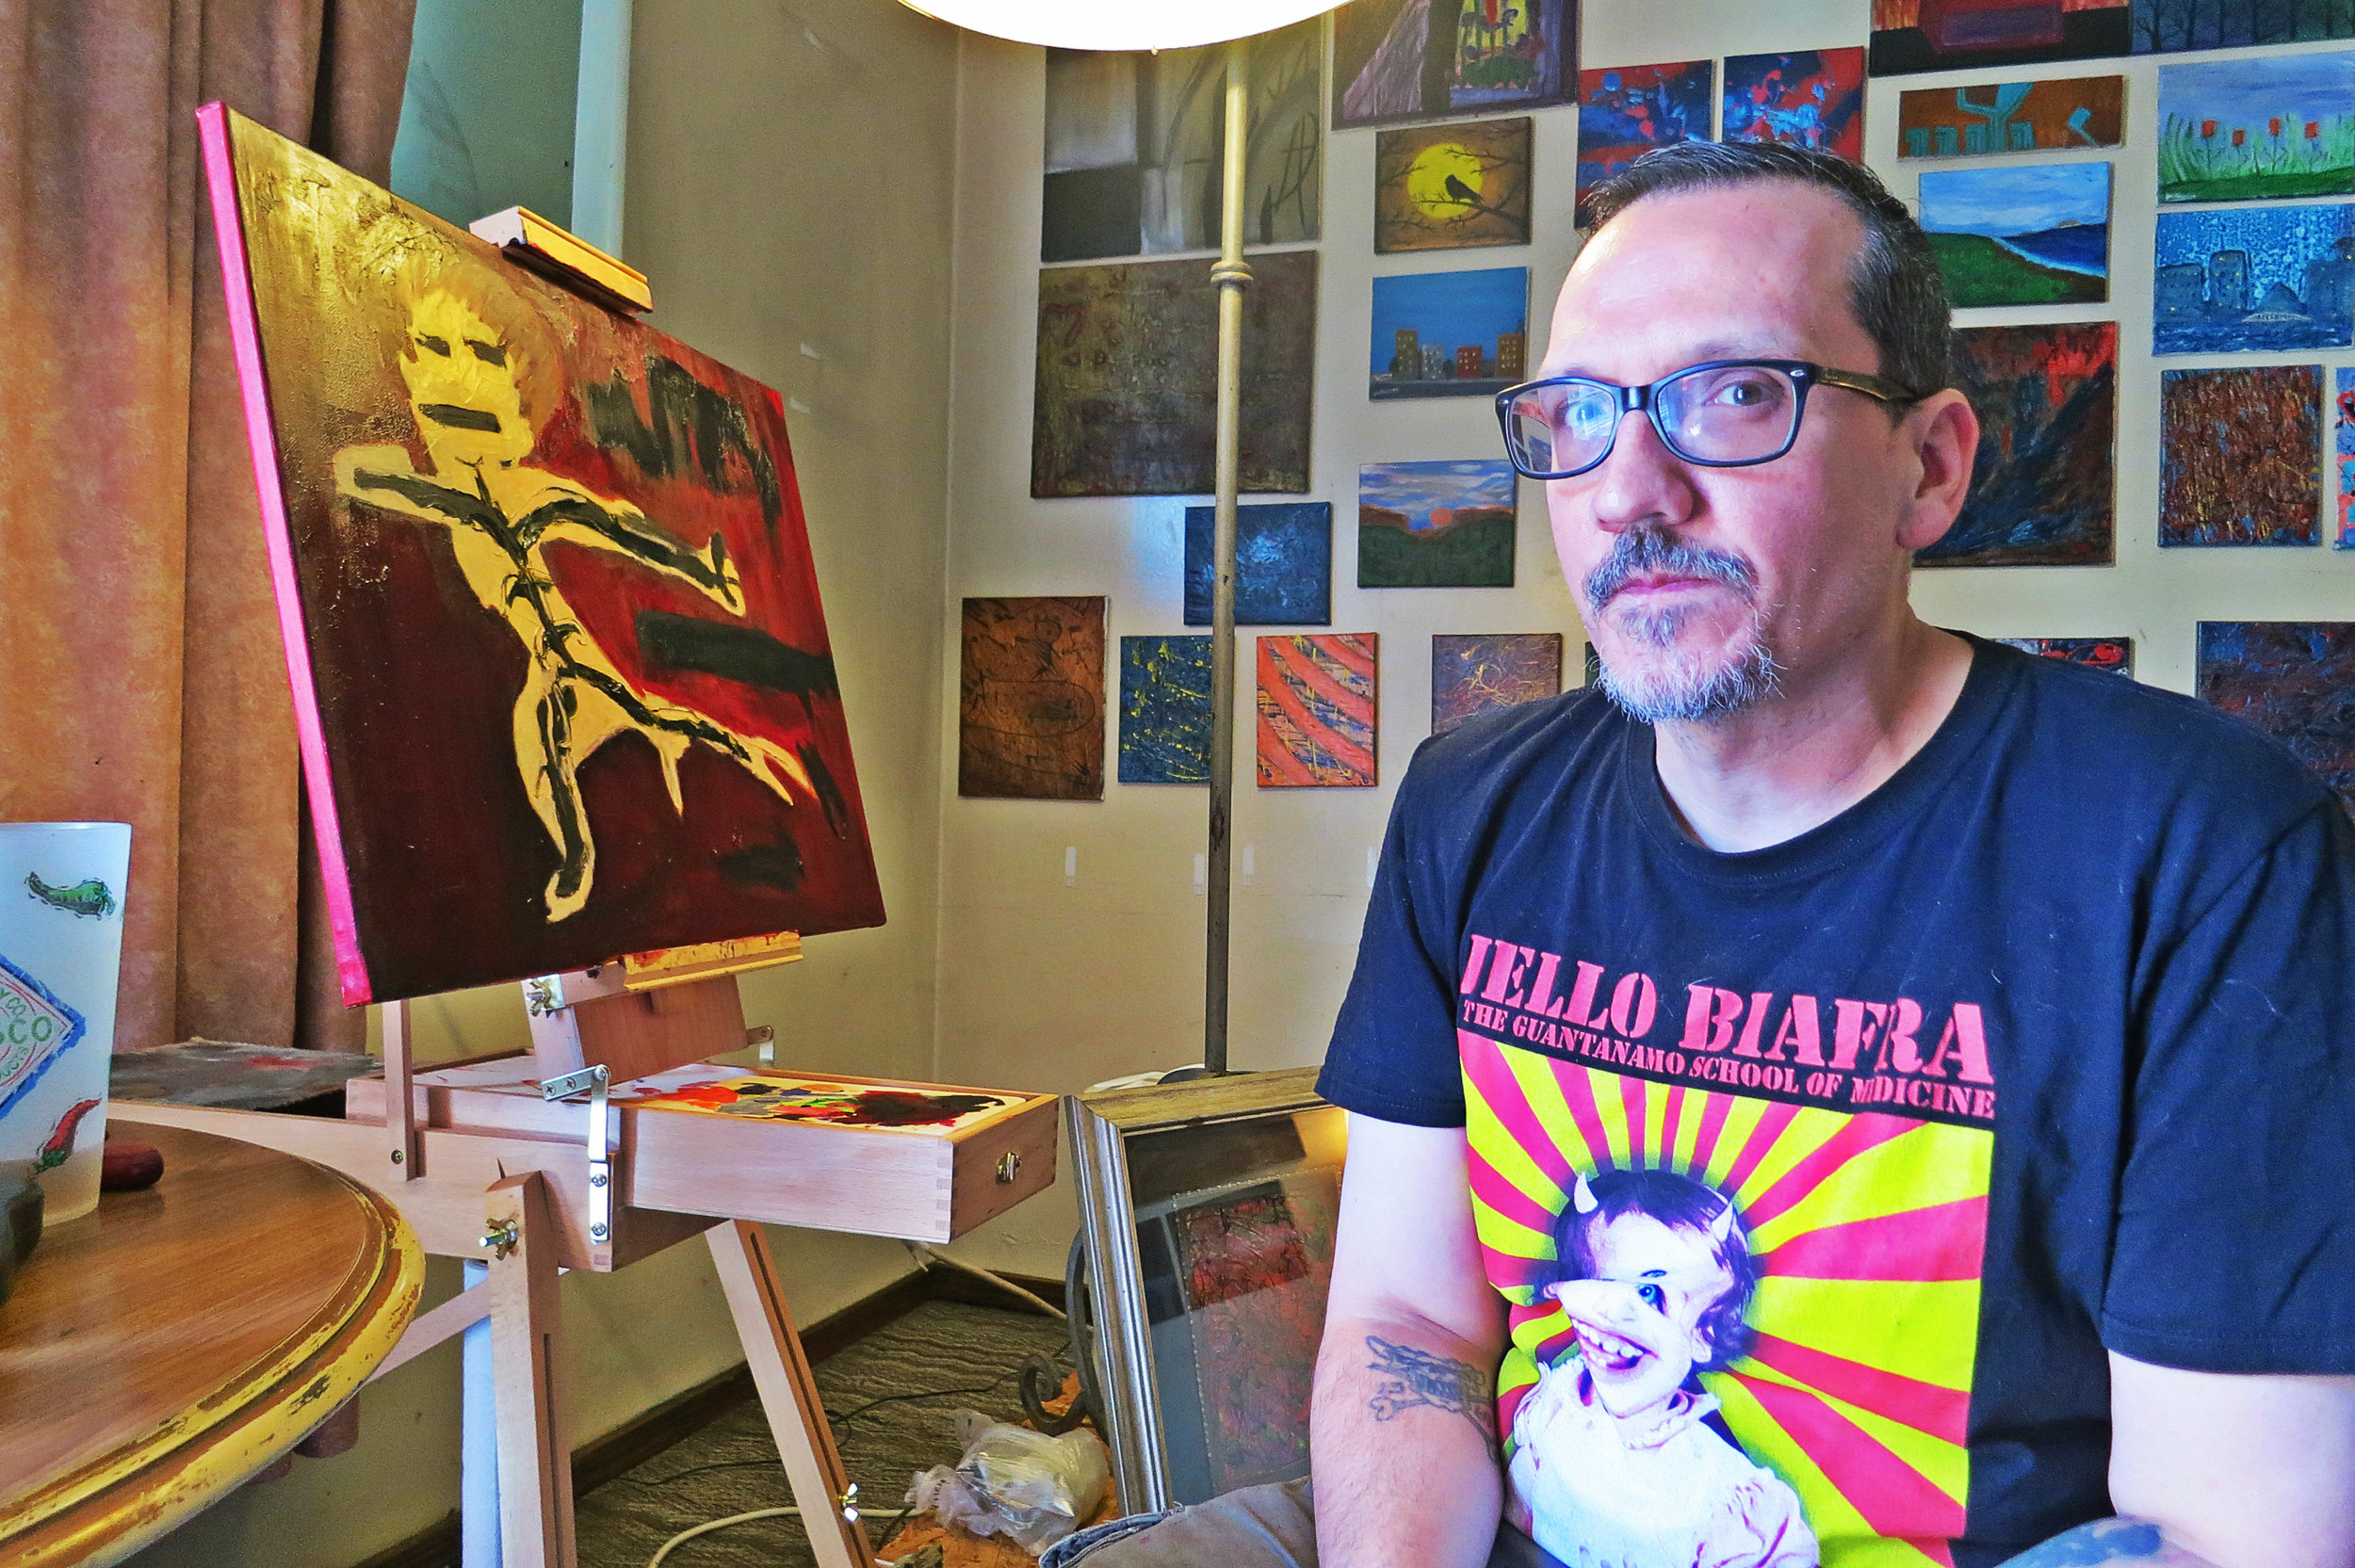 """Chad poses in front of a work in progress painting possibly called """"My Shadow"""". """"My paintings just come out and end up looking like they do,"""" he said during a recent visit. This photo was taken during Nada Dada 2016."""